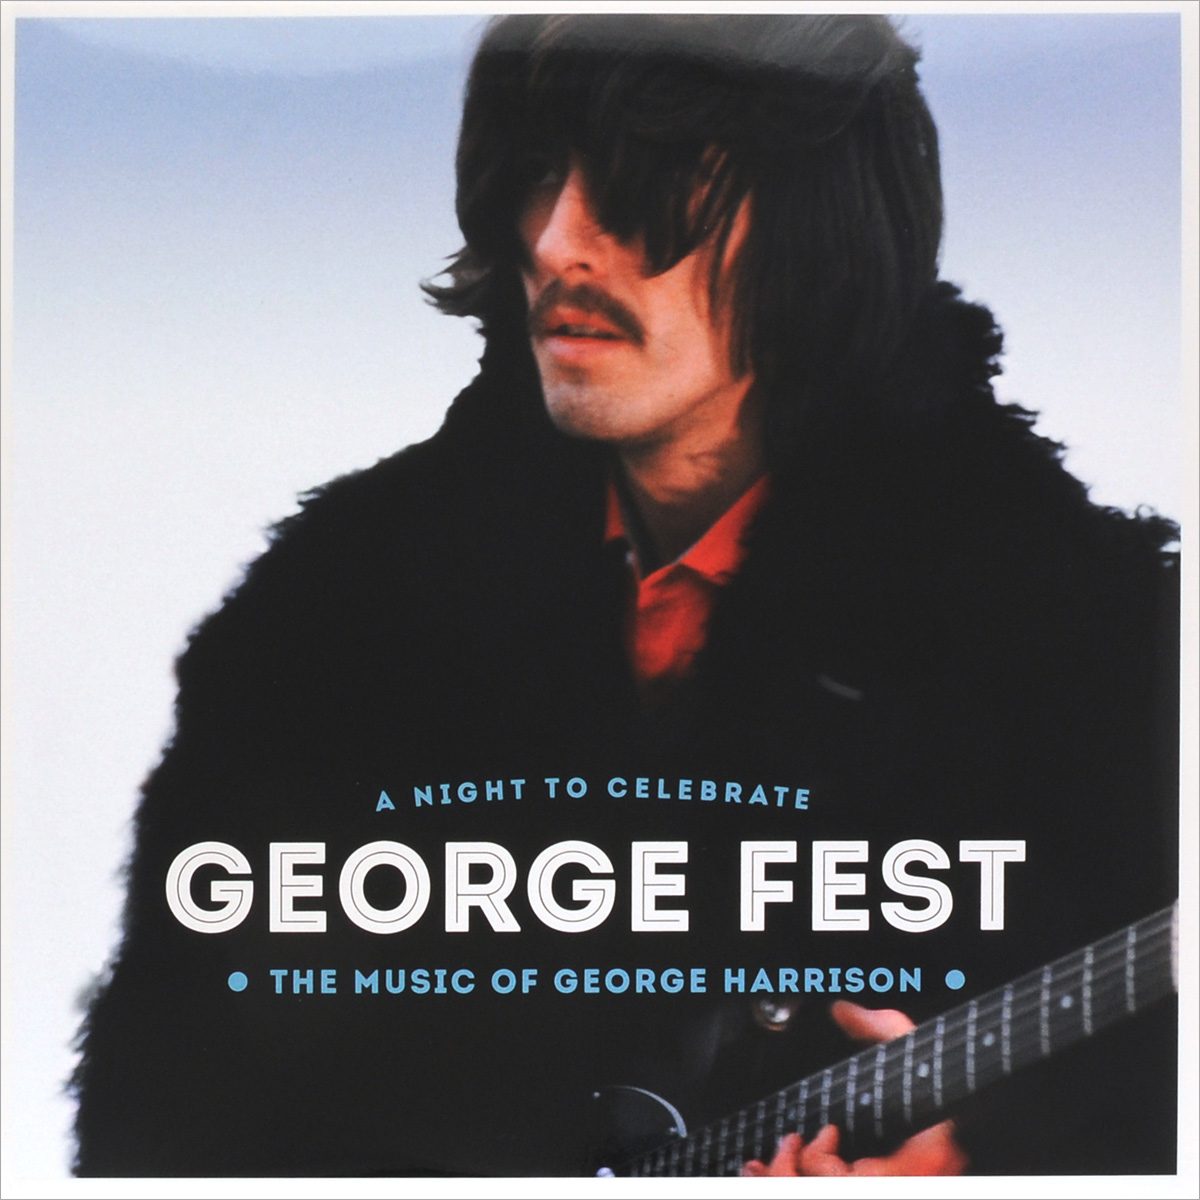 Conan O'Brien George Fest. A Night To Celebrate The Music Of George Harrison (3 LP) george harrison george harrison all things must pass 3 lp